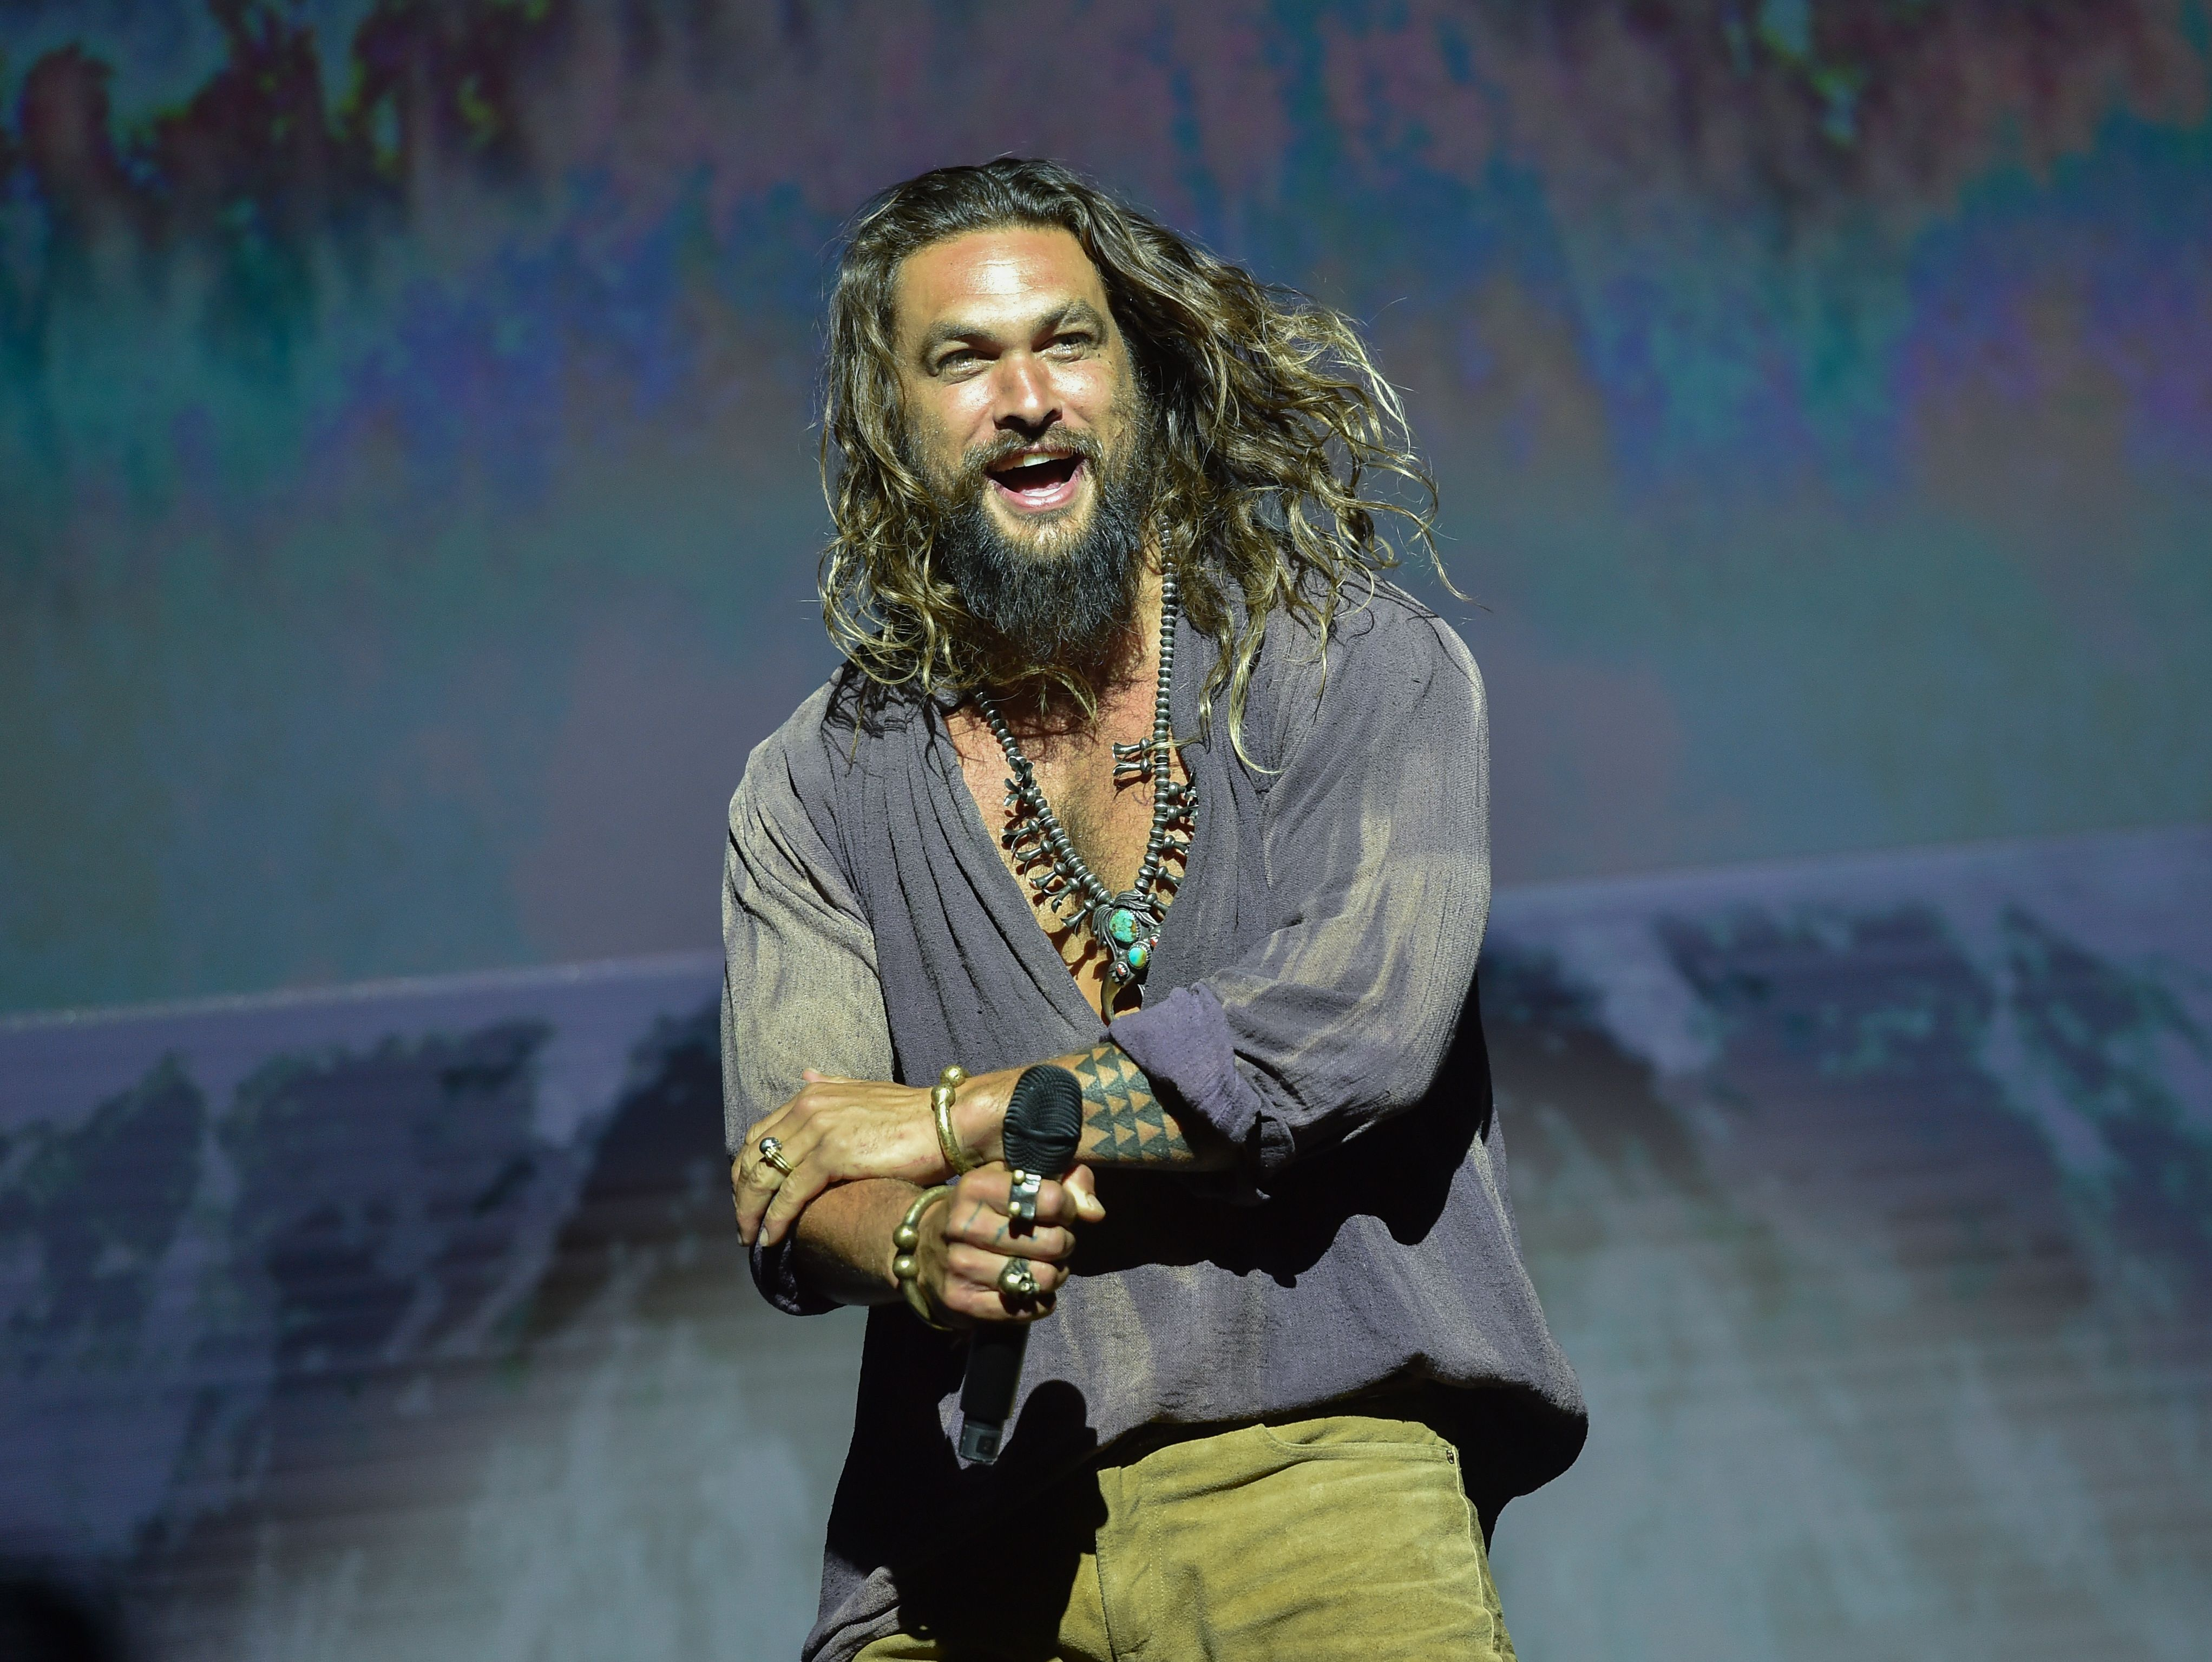 9831113a96a77 Cast member Jason Momoa participates on stage during the Warner Bros.  Theatrical Panel for